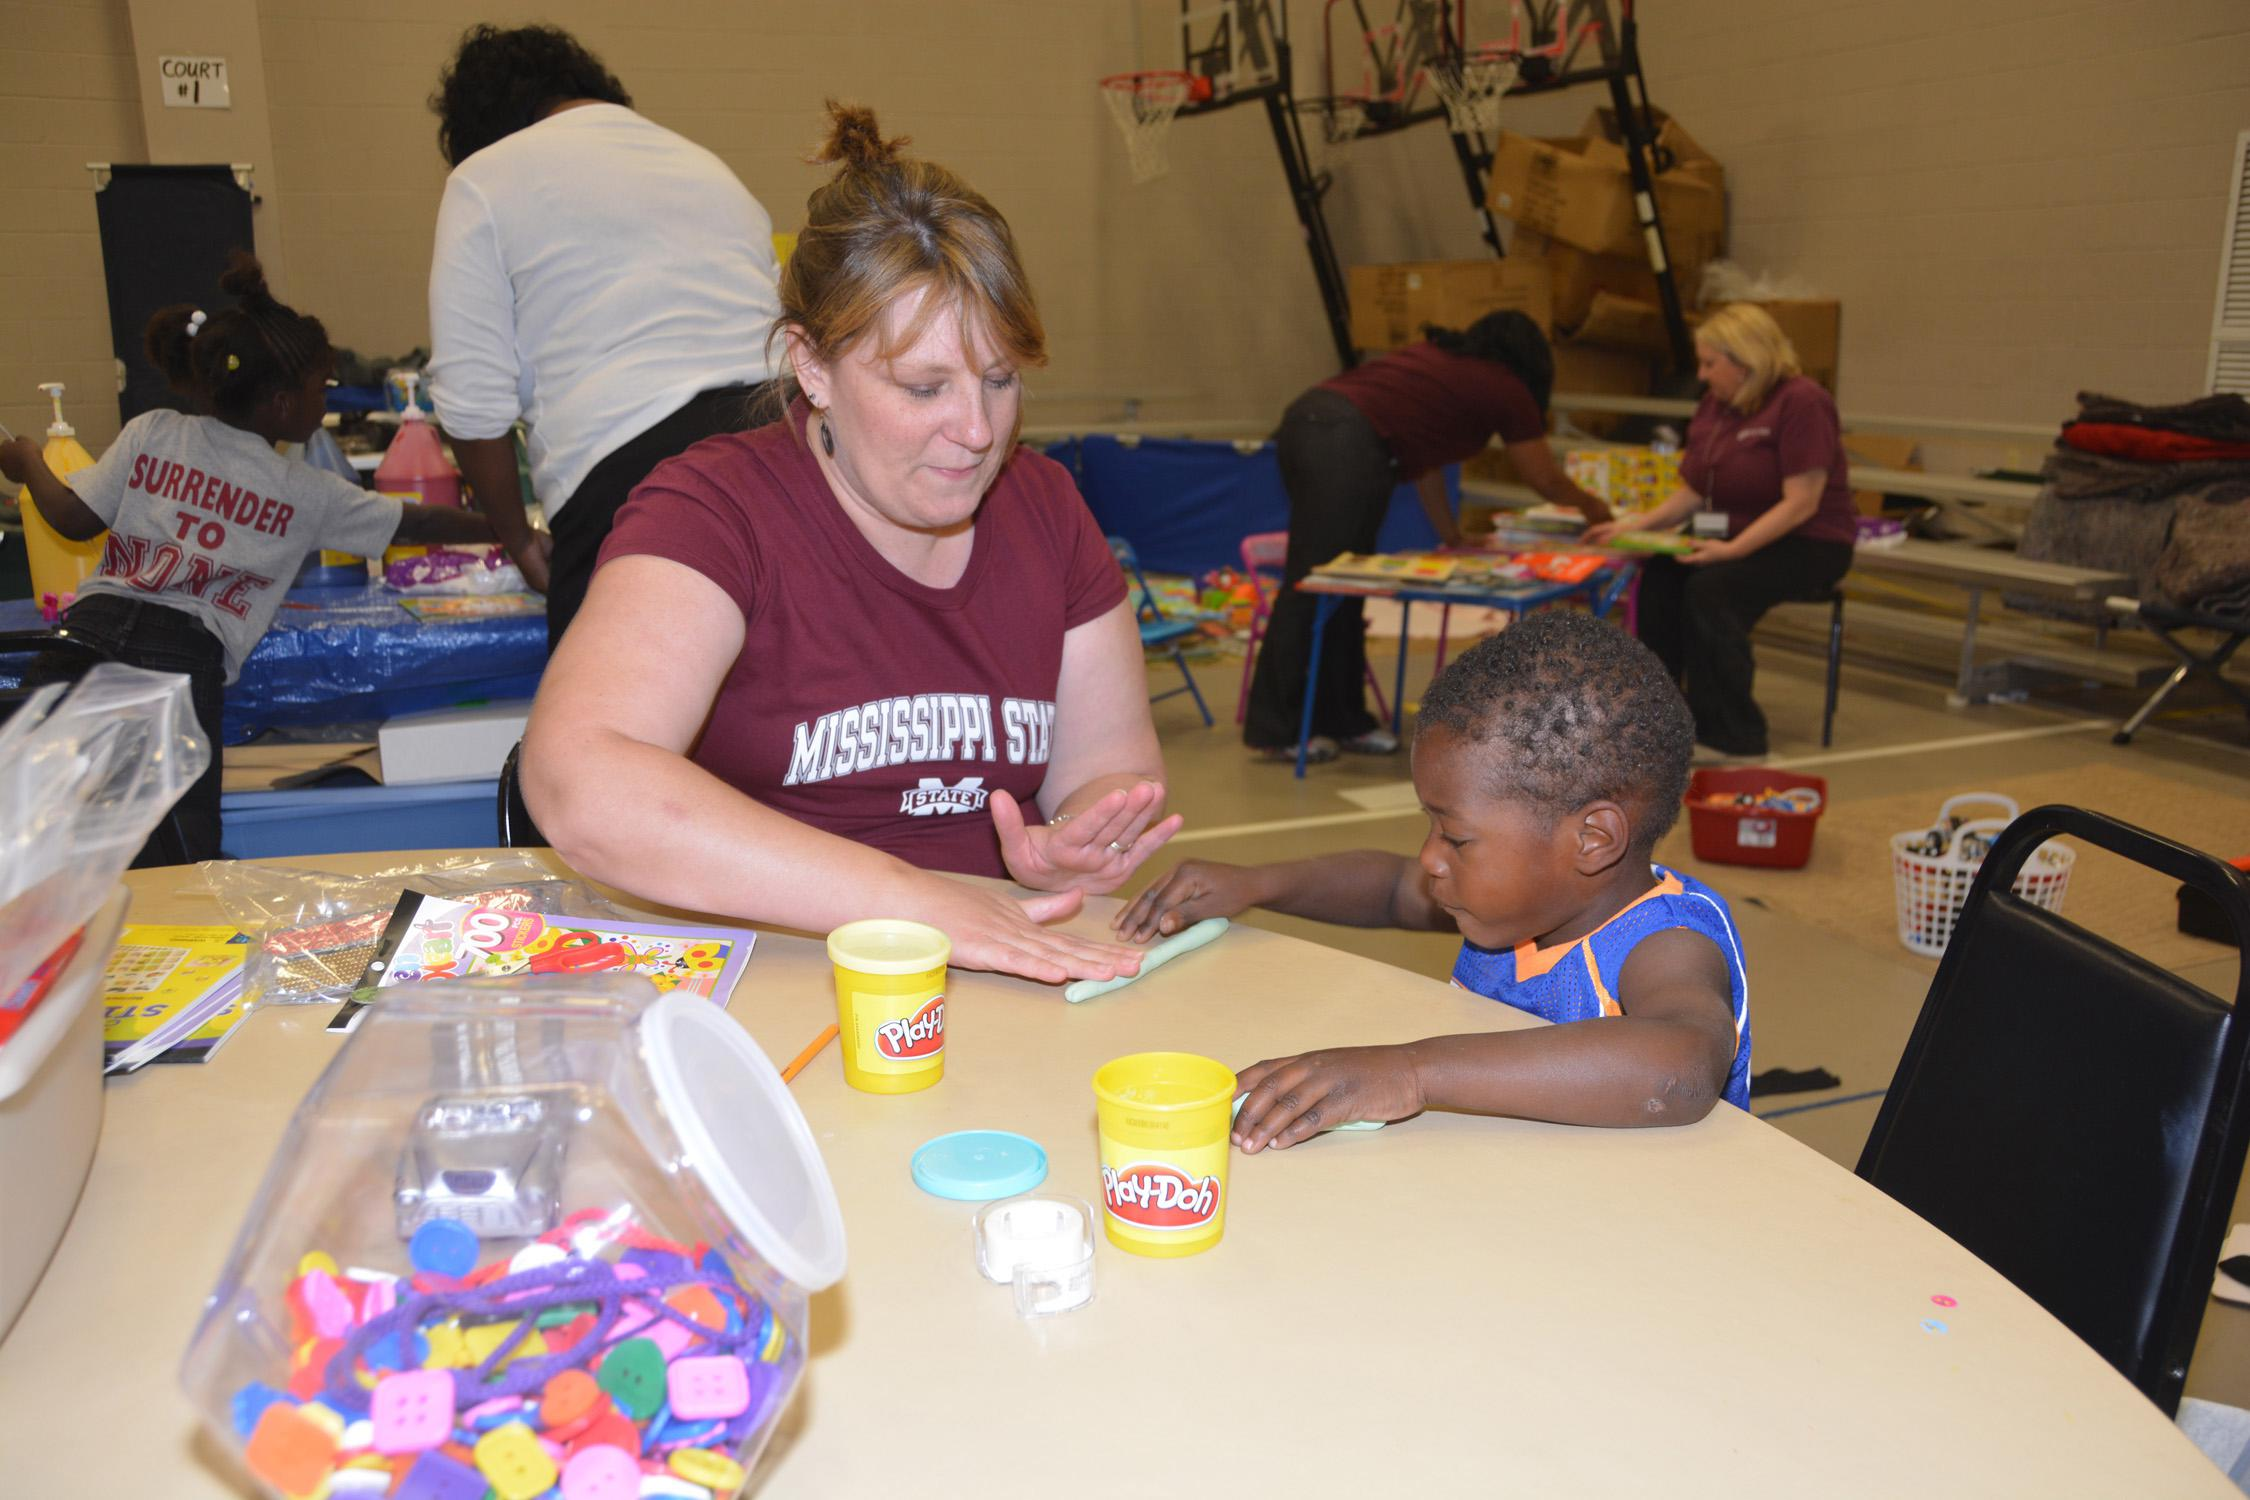 Gina Carr, a Mississippi State University Extension Service staff member with the Mississippi Child Care Resource and Referral Network, keeps 3-year-old Brandily Haynes engaged while his family is in the American Red Cross Shelter at First Baptist Church in Louisville, Mississippi, on May 1, 2014.  (Photo by MSU Ag Communications/Linda Breazeale)